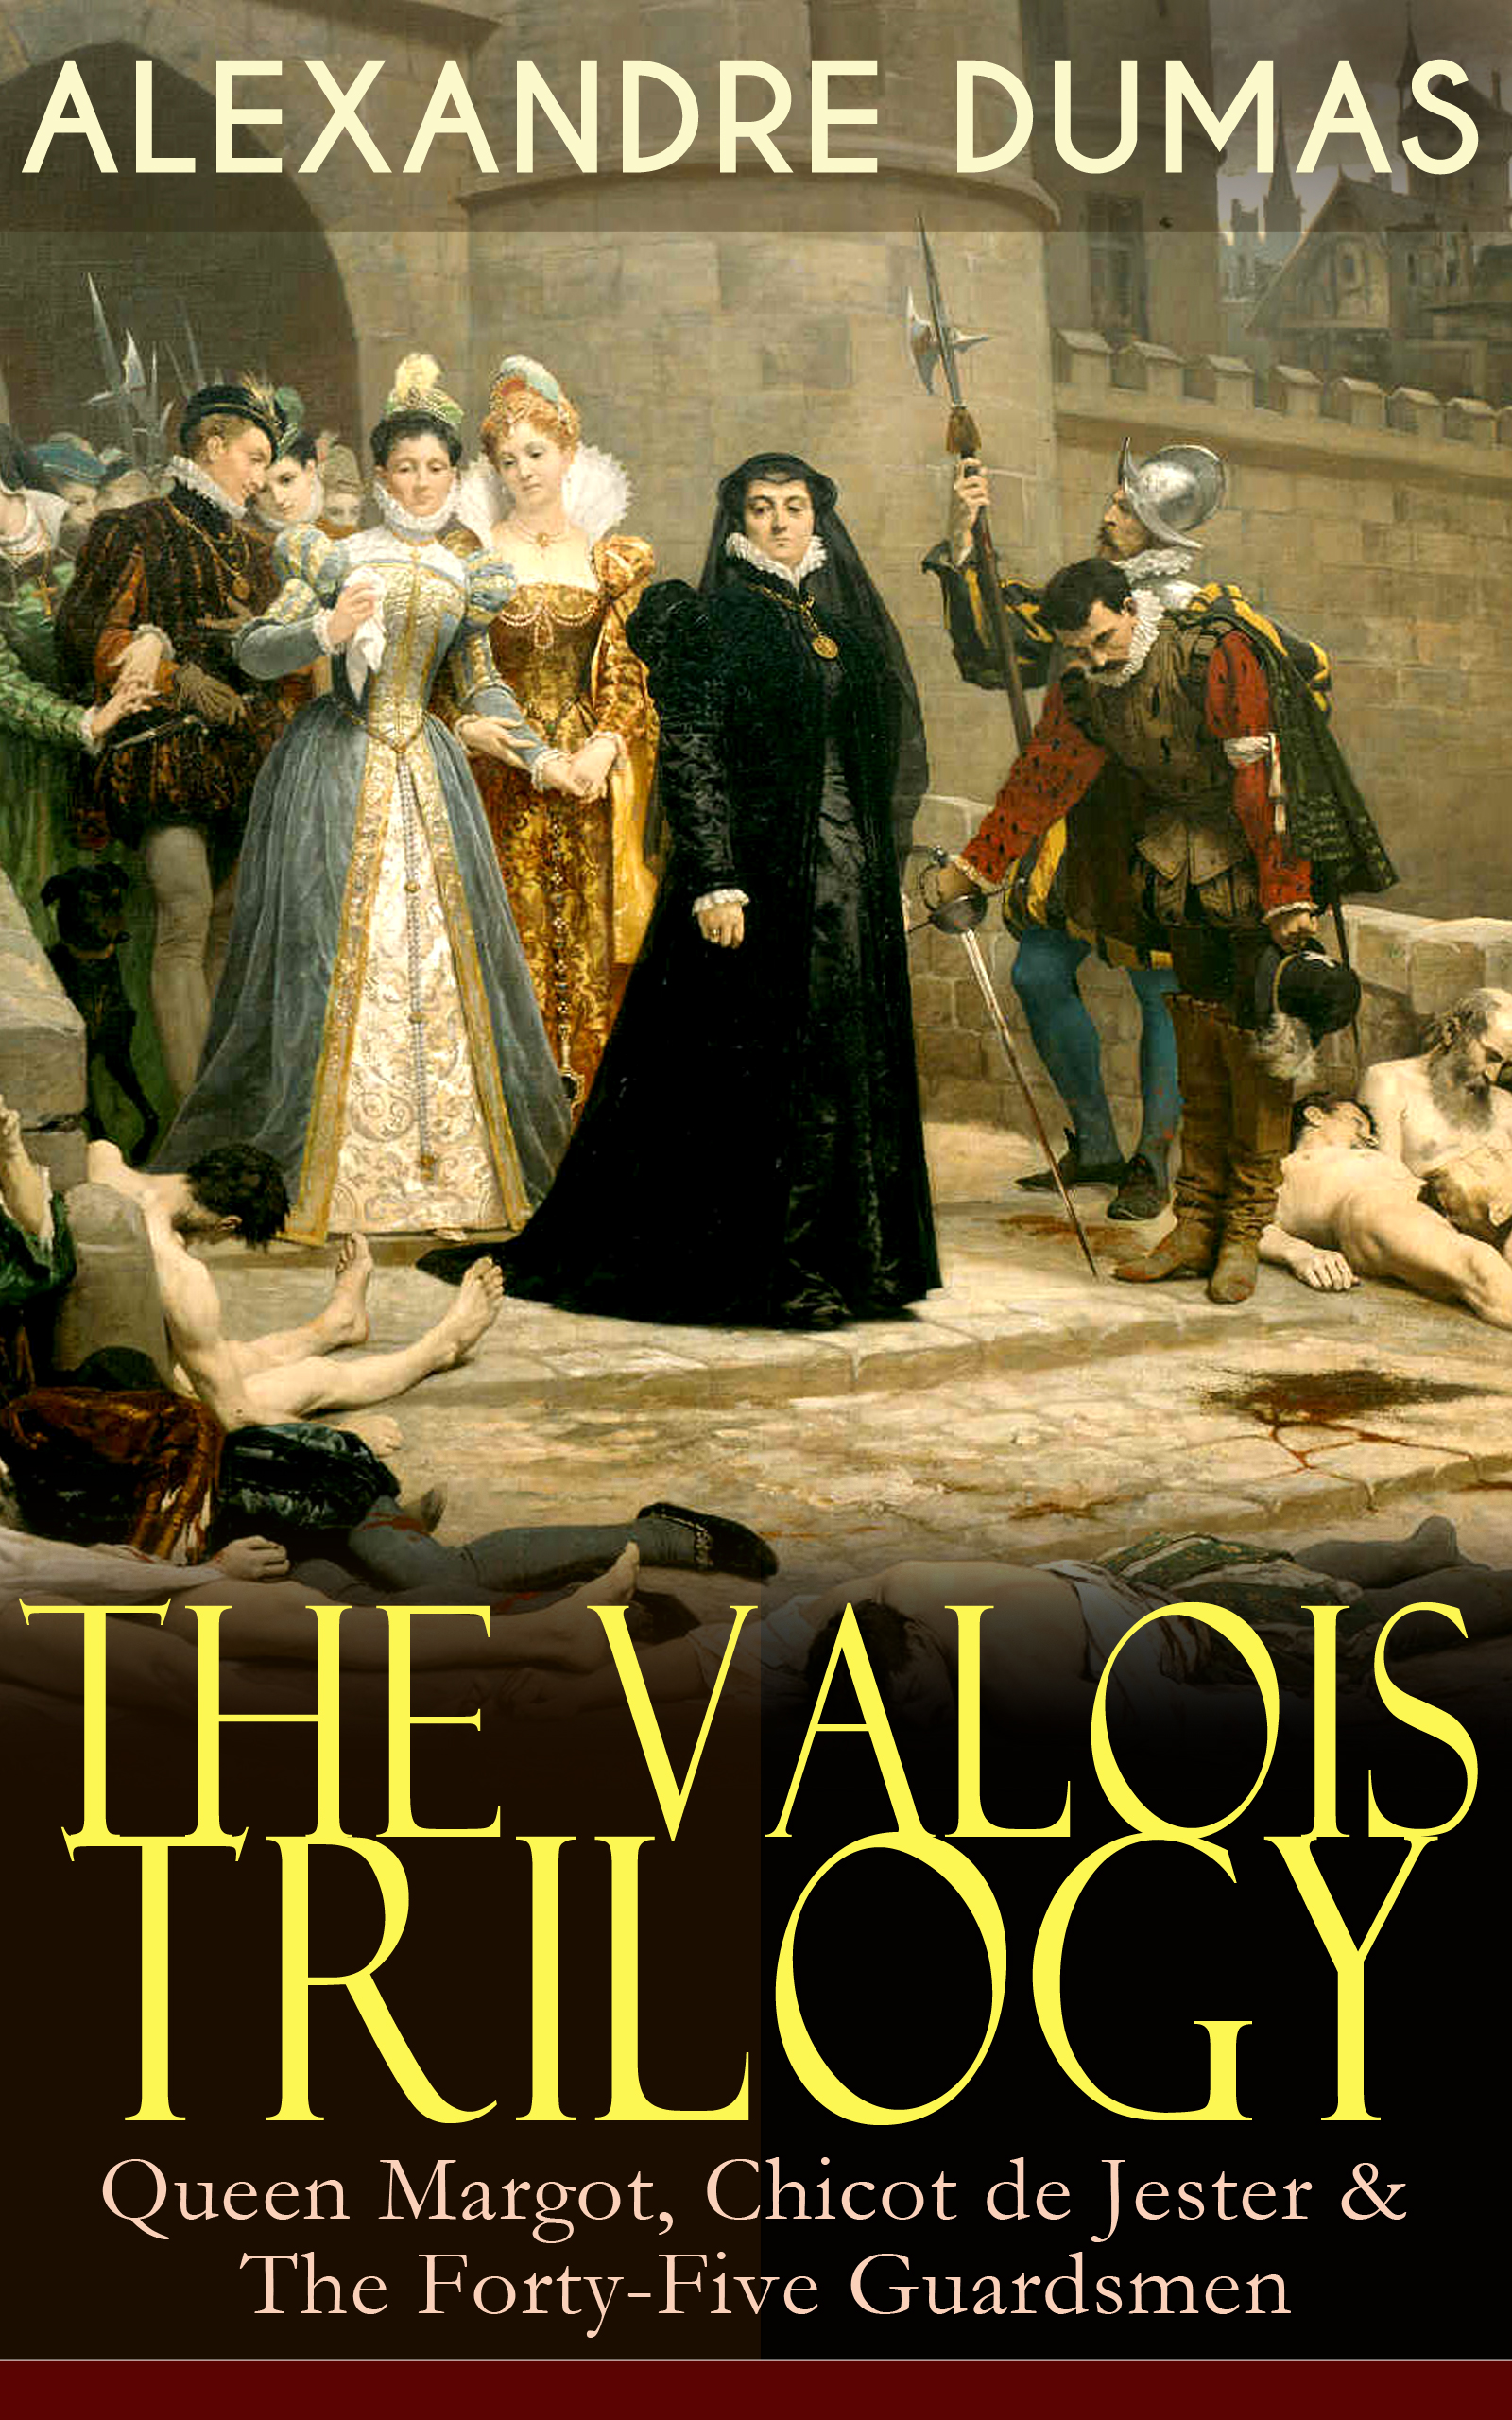 Alexandre Dumas THE VALOIS TRILOGY: Queen Margot, Chicot de Jester & The Forty-Five Guardsmen the first forty days